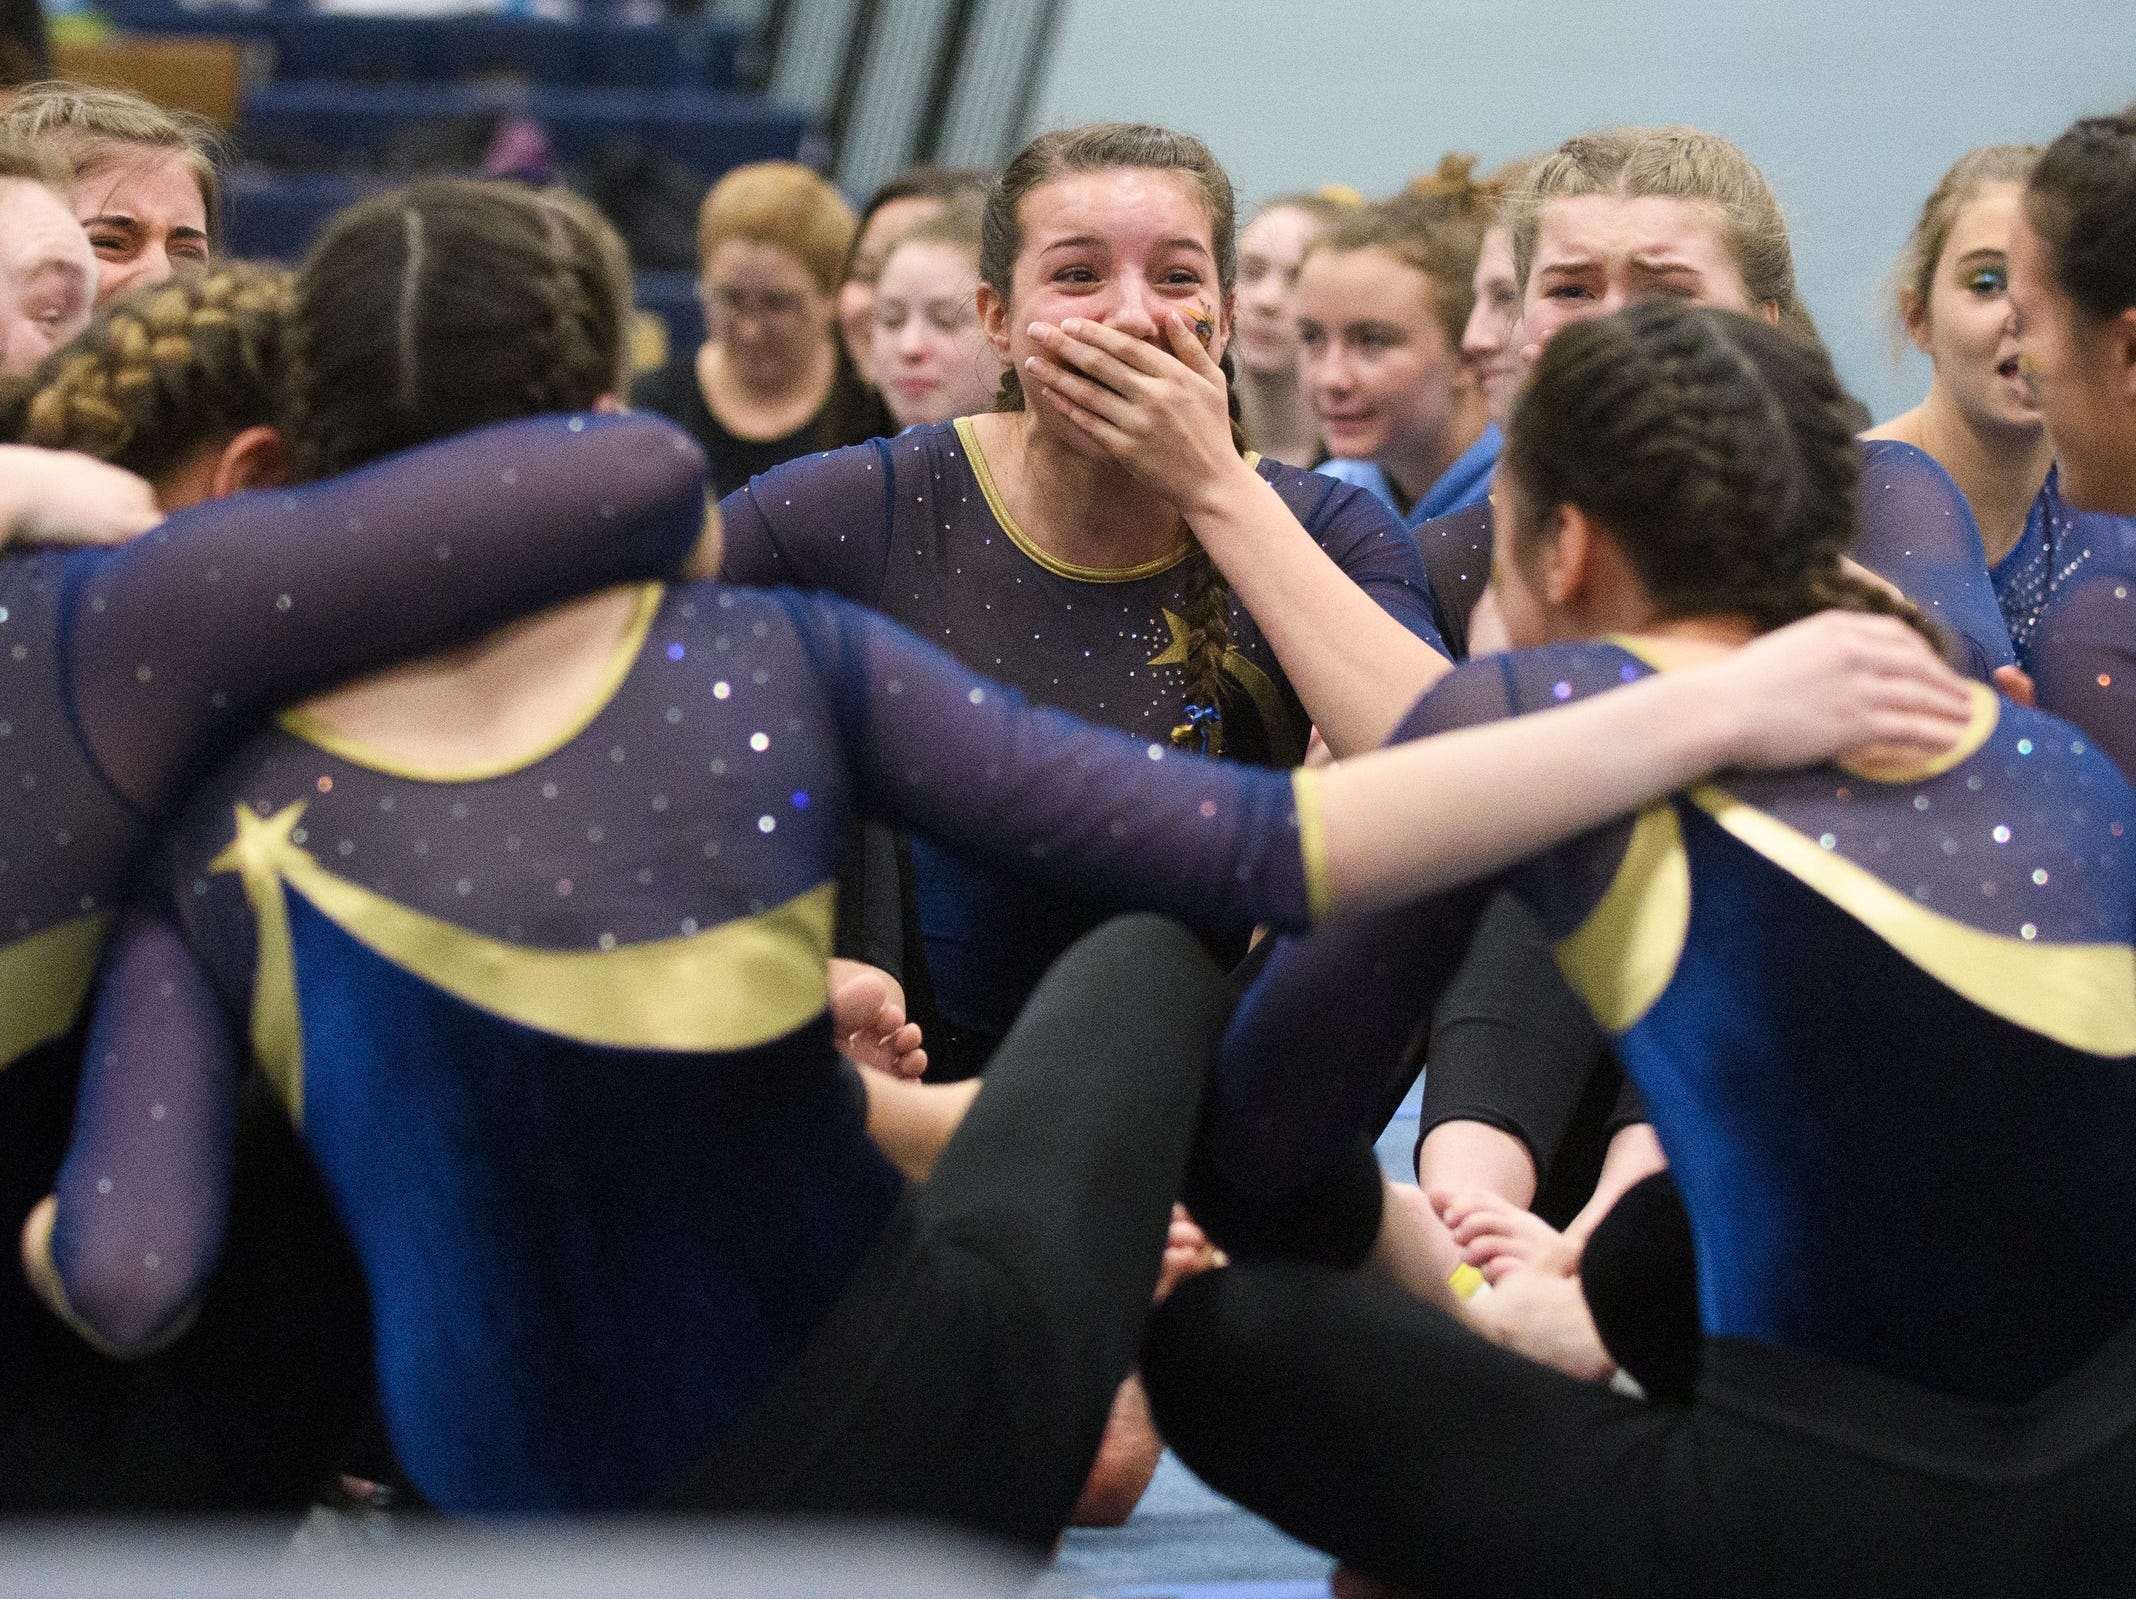 Essex reacts to the announcement of the state championship during the 2019 high school gymnastics championship at Essex High School on Saturday afternoon February 16, 2019 in Essex, Vermont.